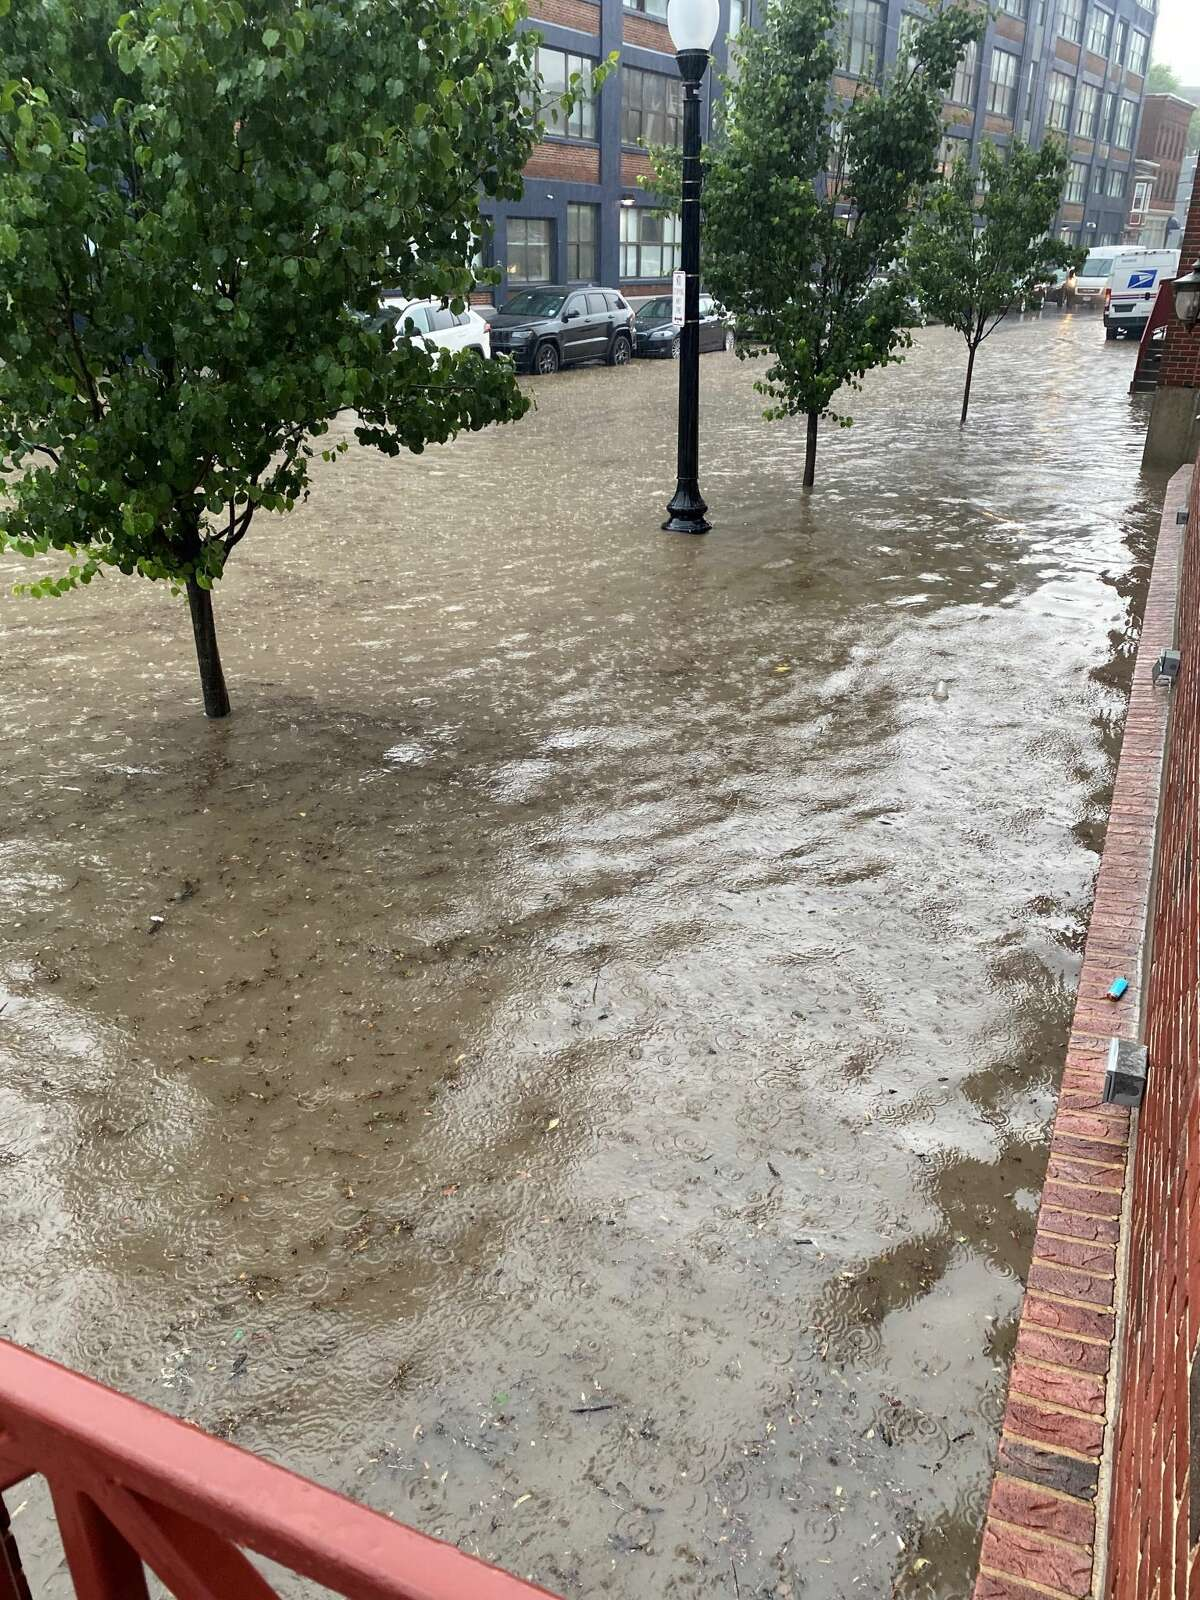 The Sheridan Avenue street and sidewalk in downtown Albany flooded during Tuesday afternoon's rainstorm. The sibling restaurants An American Brasserie and Yono's normally have tables along the sidewalk.